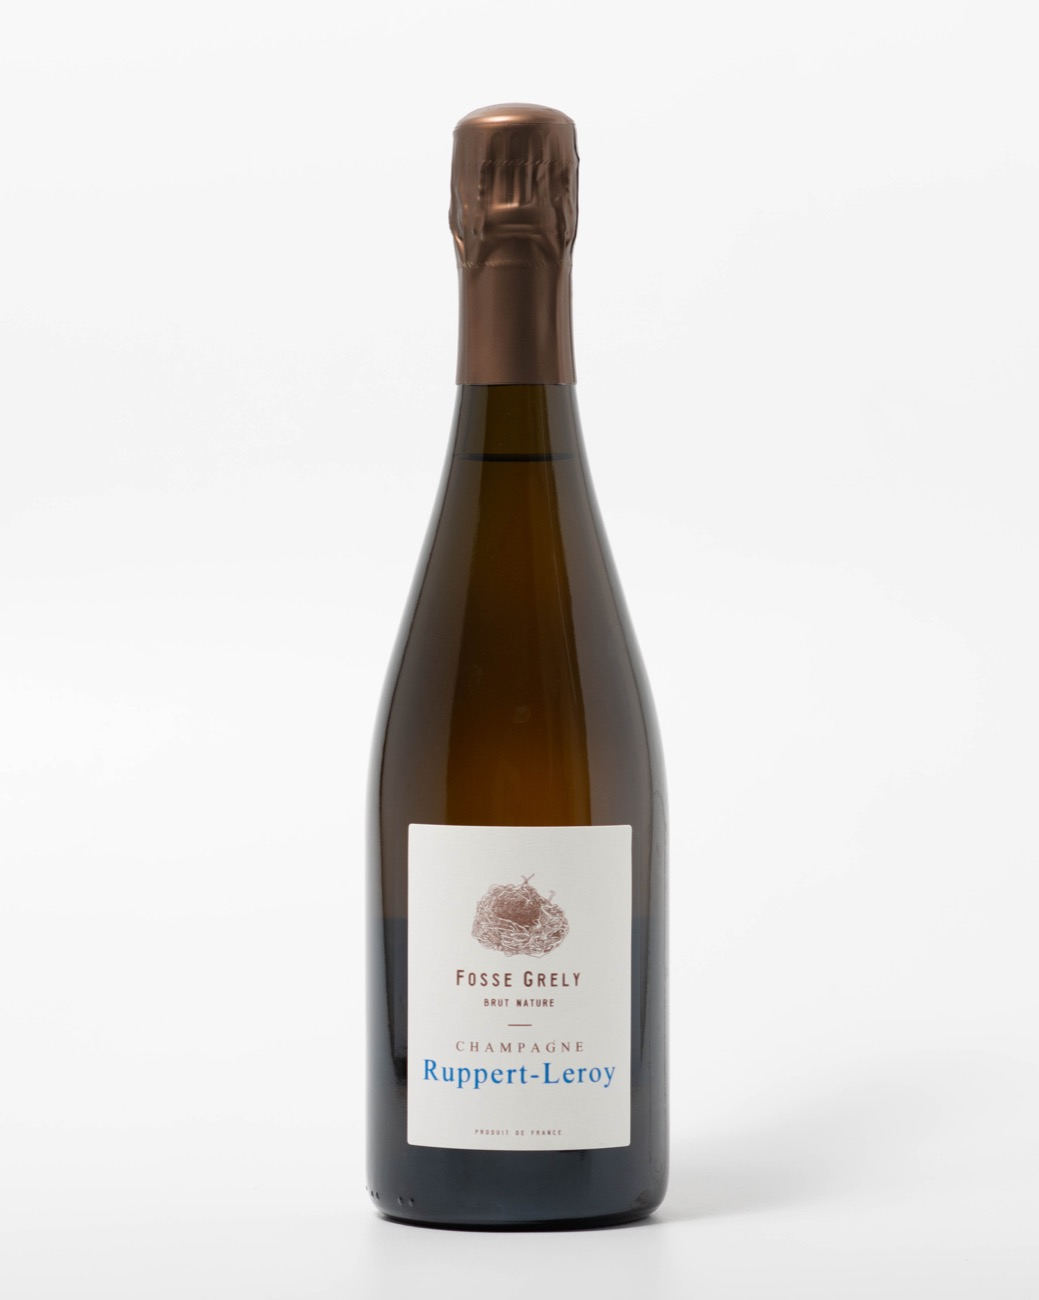 Ruppert Leroy AOP Champagne Fosse Grely